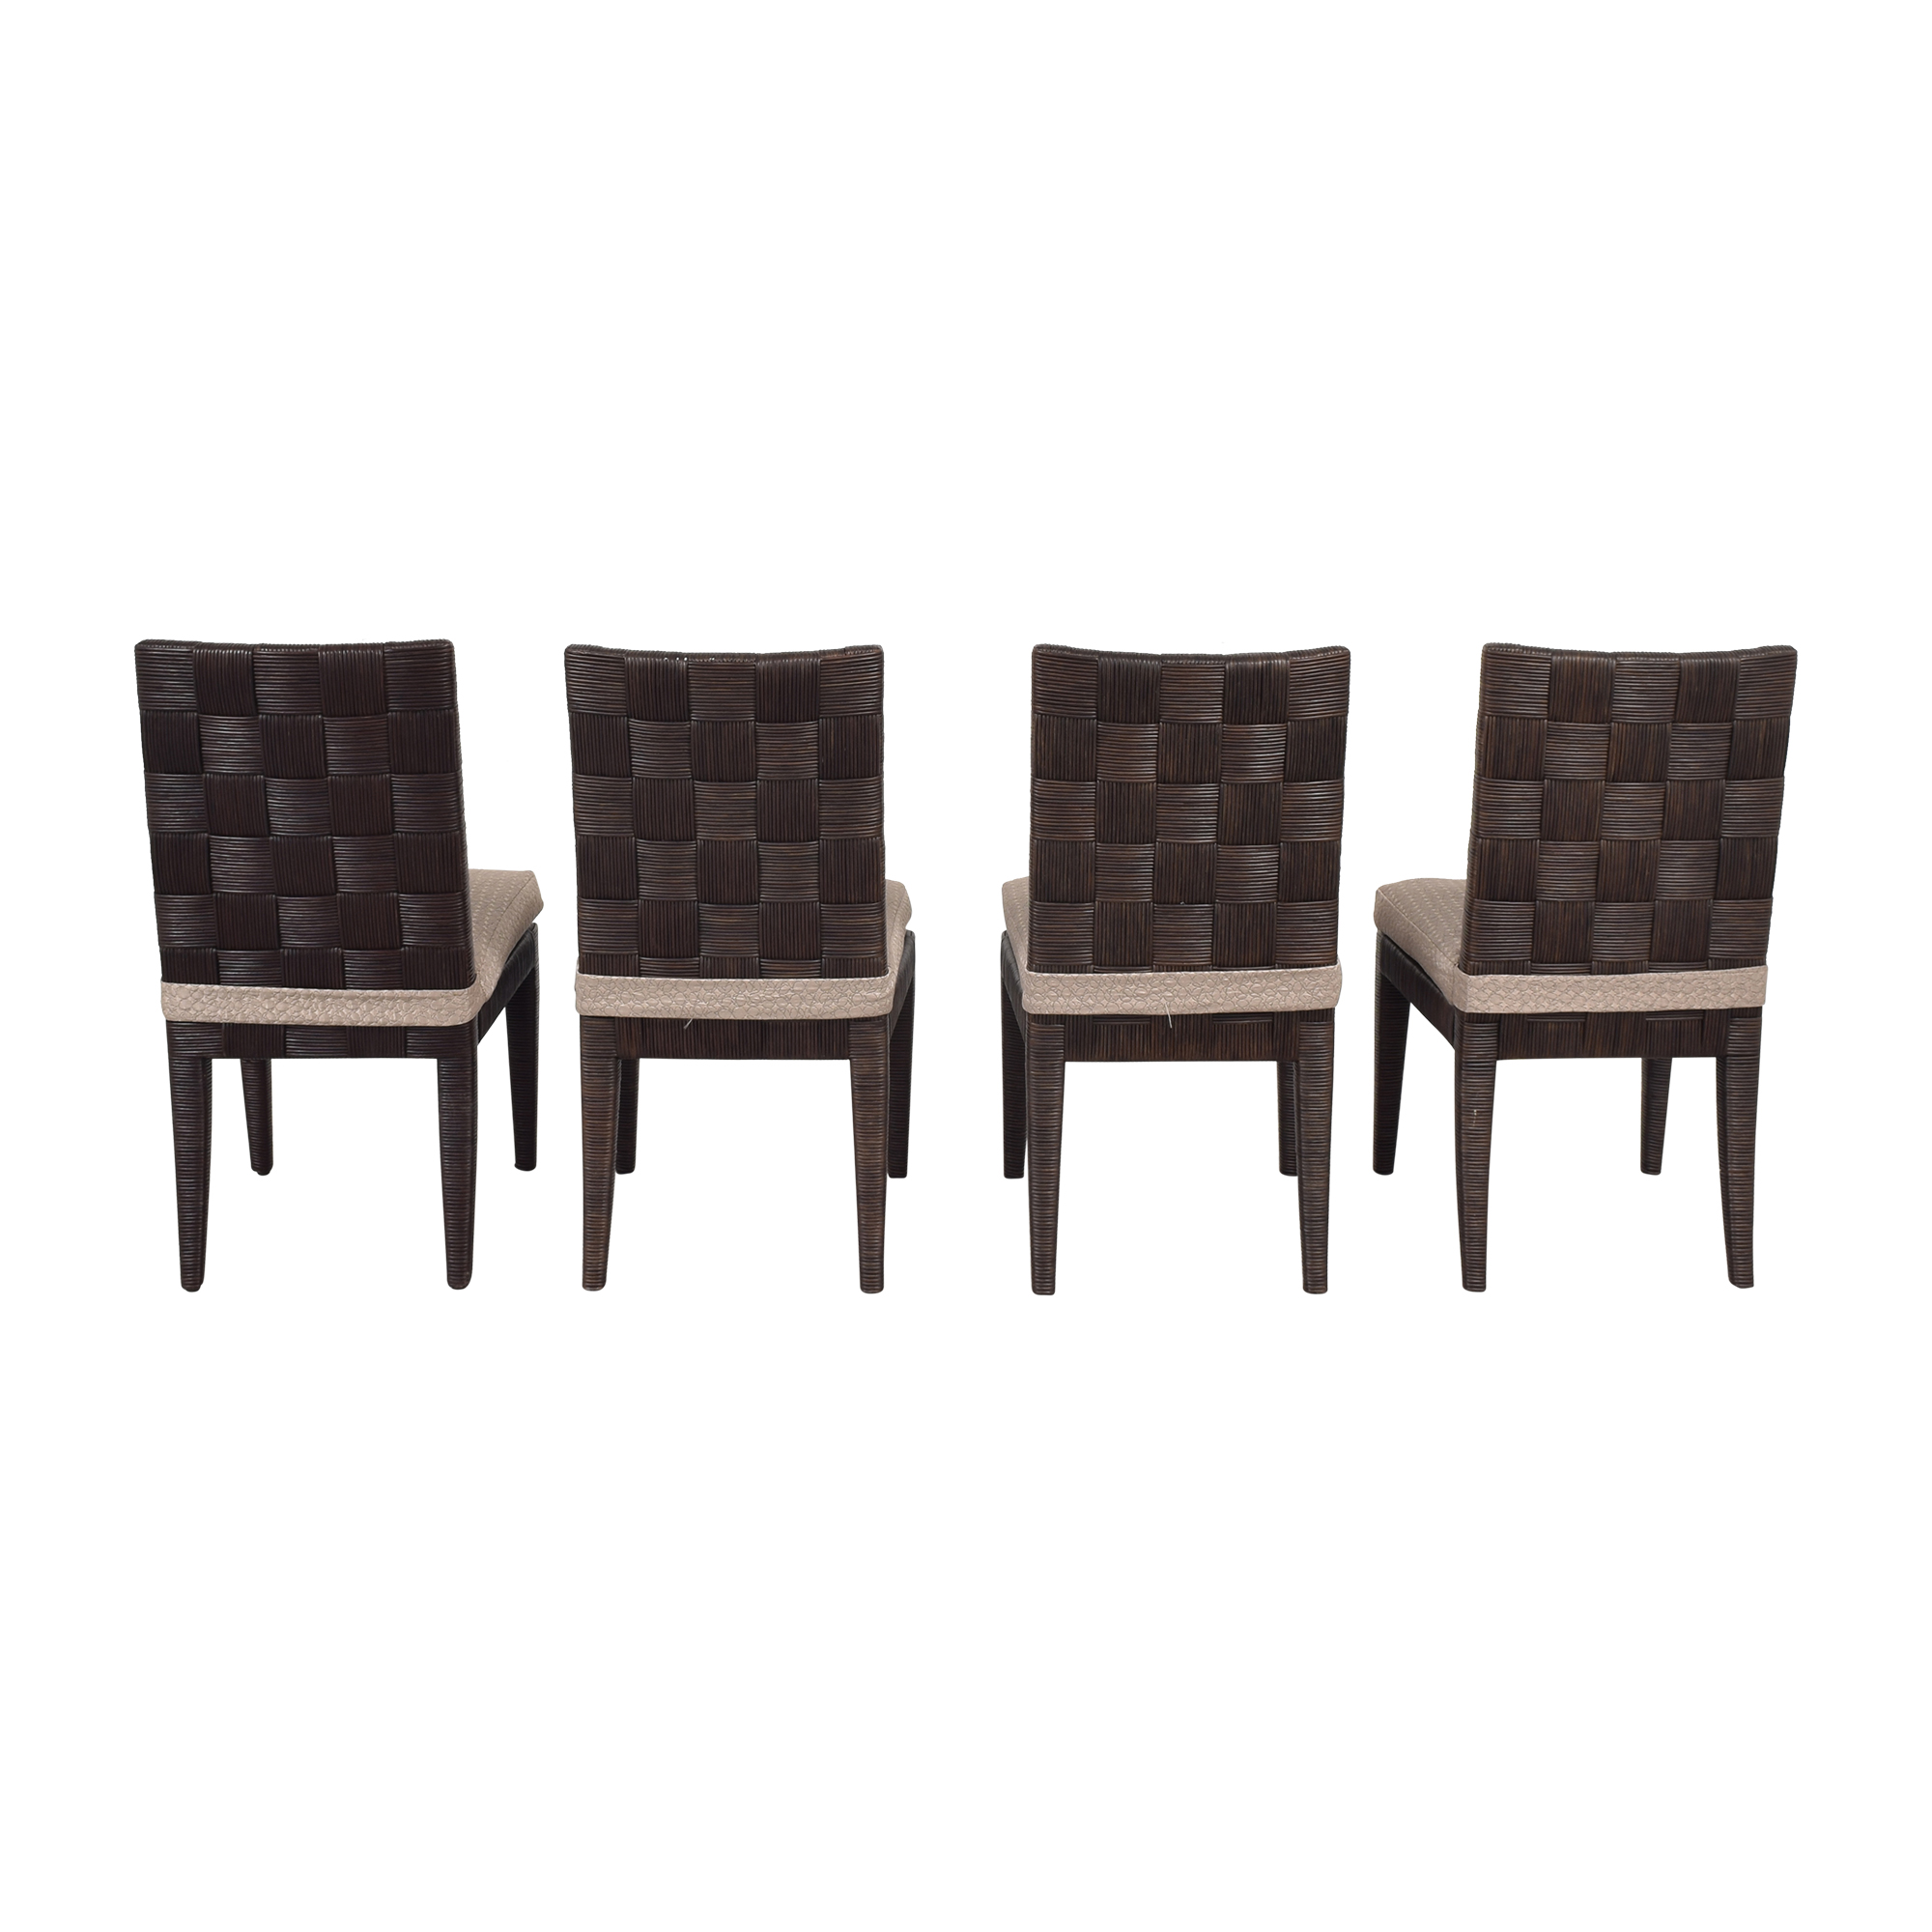 buy Donghia John Hutton Block Island Side Dining Chairs Donghia Dining Chairs